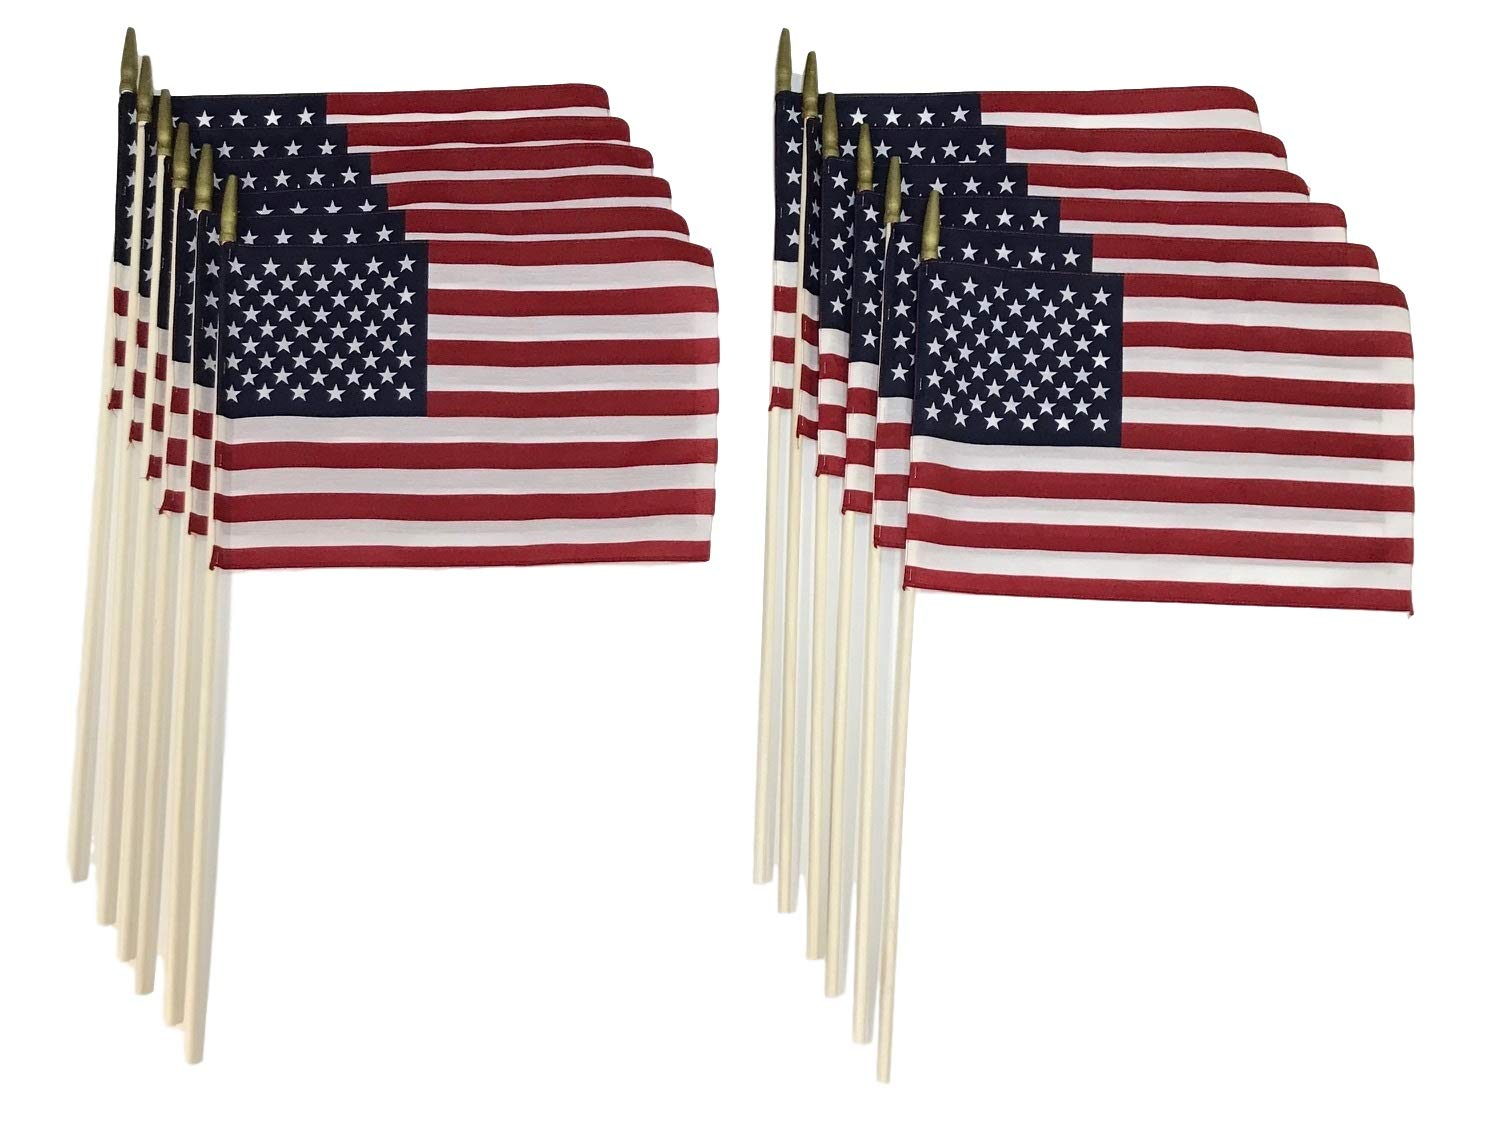 Martin's Flag 8'' x 12'' American Stick Flags, 24'' x 5/16'' Wooden Dowel, Made in USA, Hemmed Edges (144)